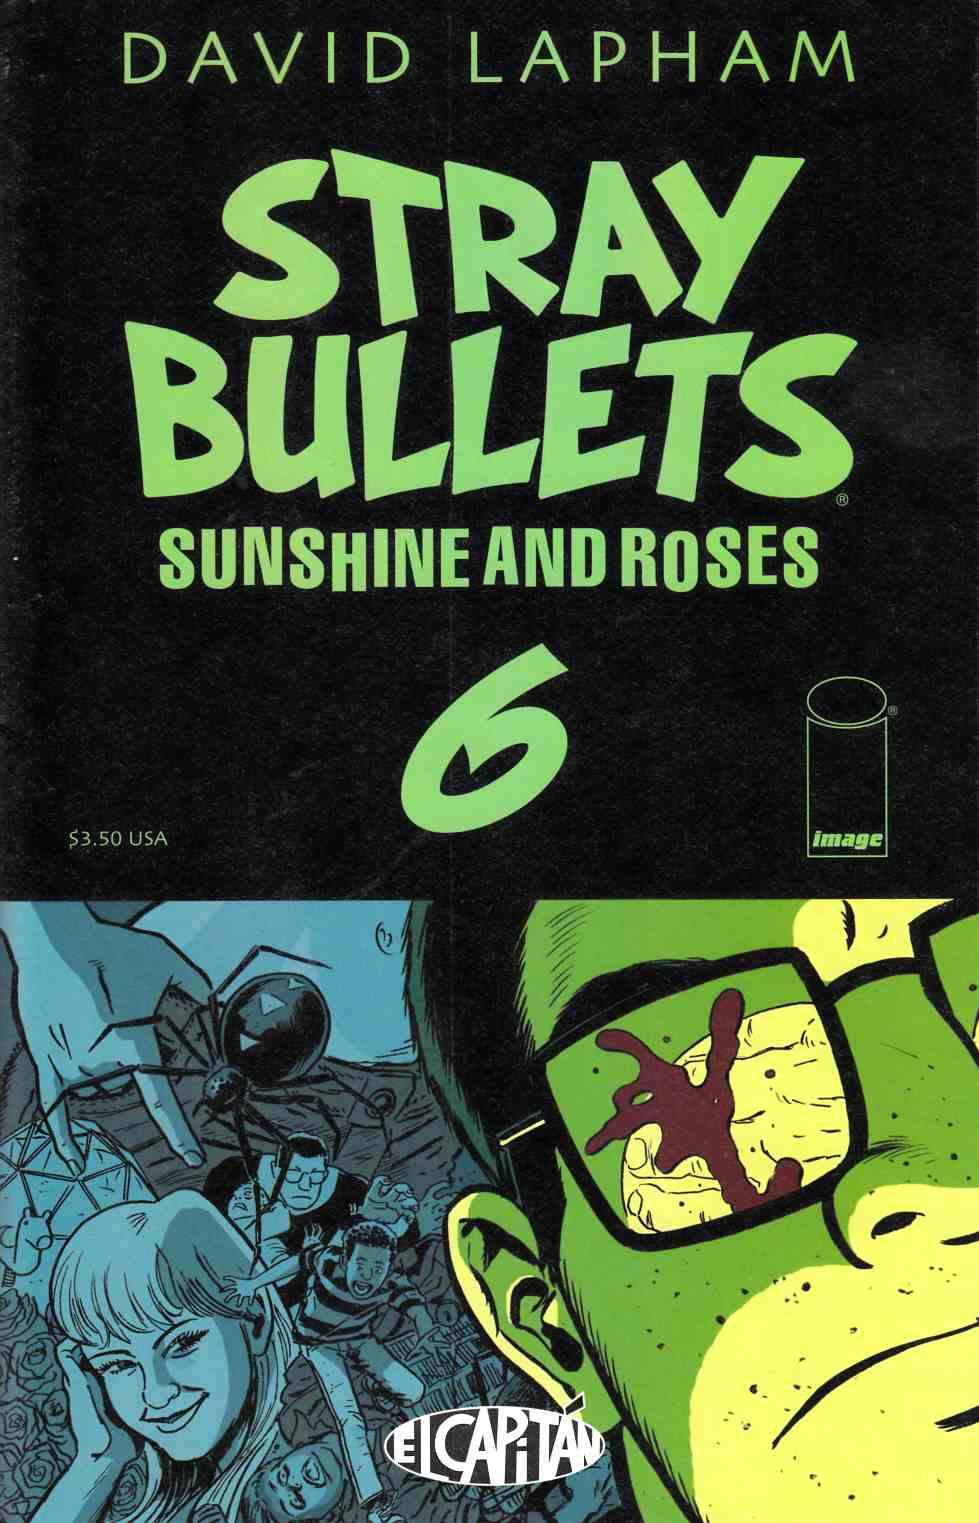 Stray Bullets Sunshine & Roses #6 [Image Comic] THUMBNAIL